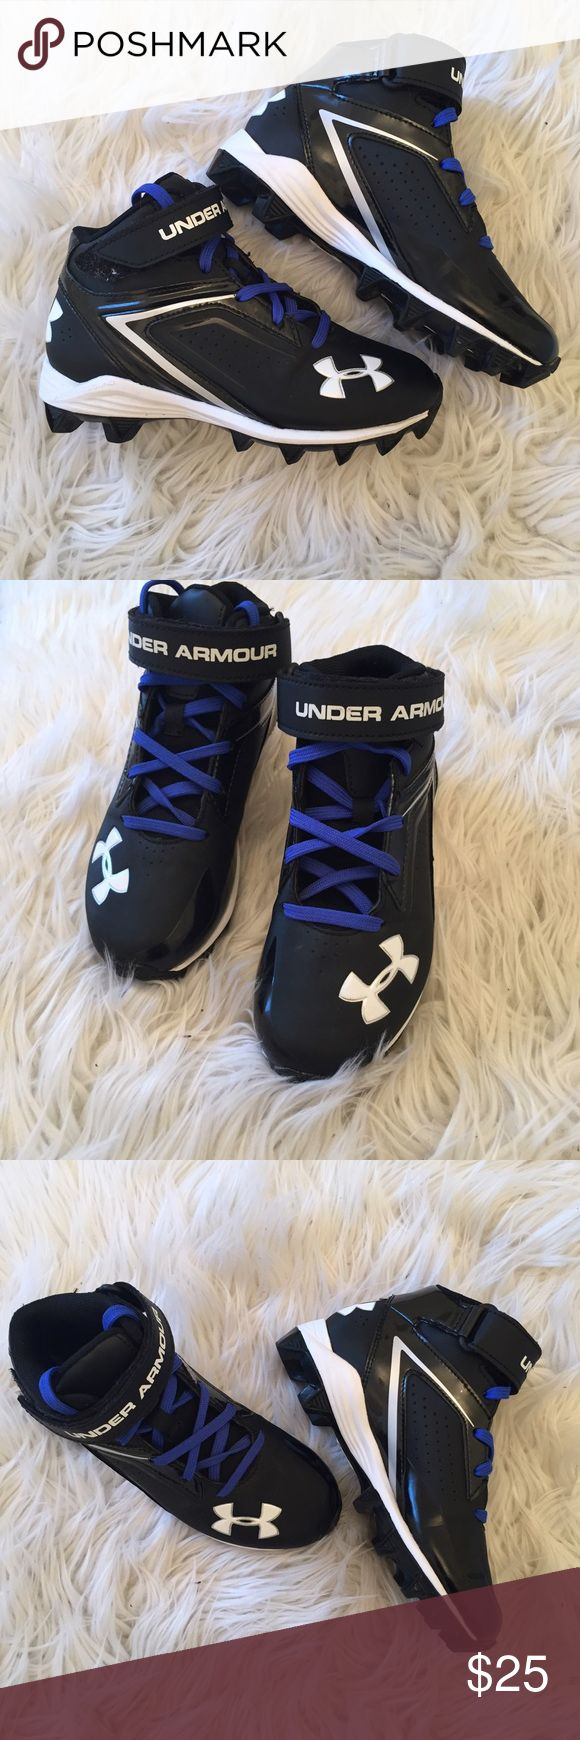 Boys Football Cleats Really great condition!  Other than there being a very tiny evidence of these being worn on the bottom of the shoe, you'd never know they weren't brand new.  Great deal for your little football player. Under Armour Shoes